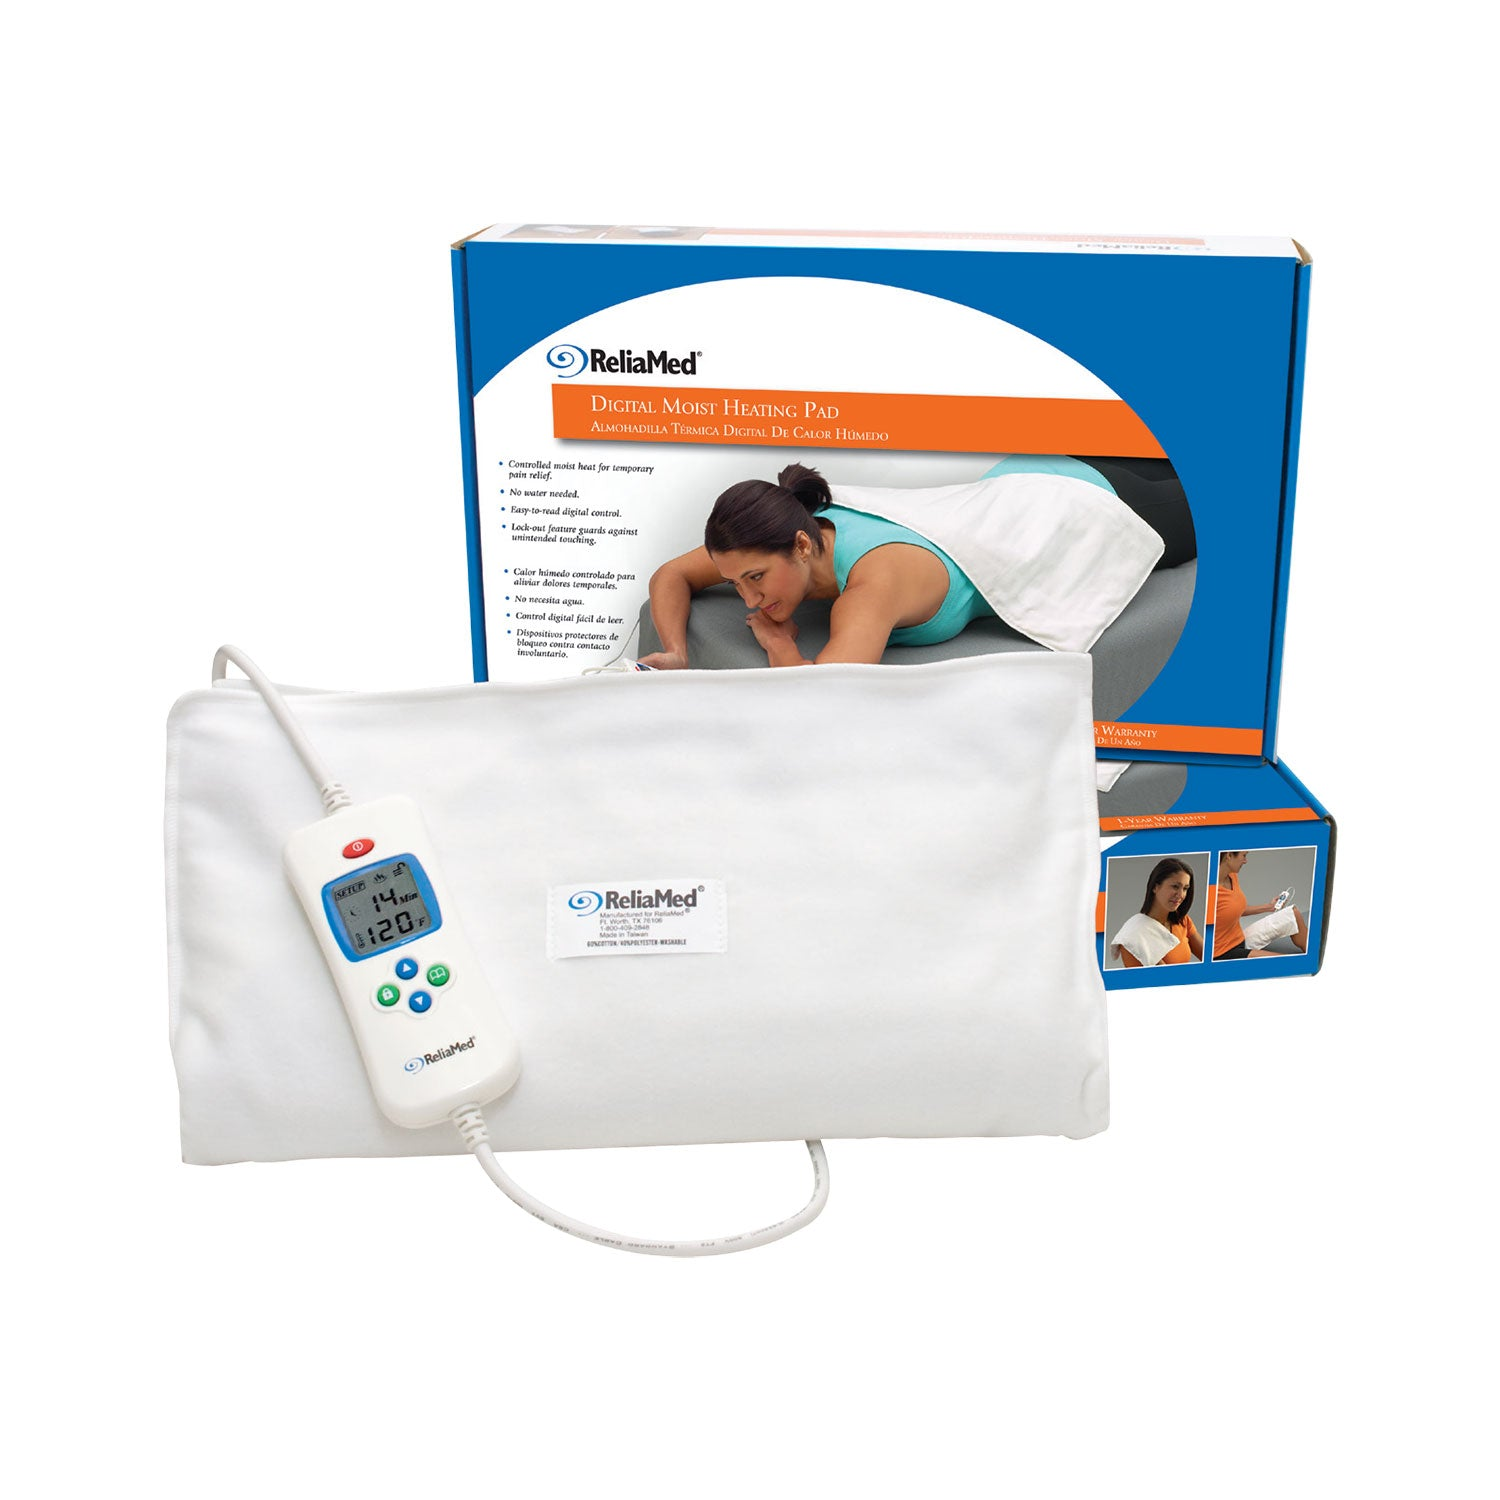 ReliaMed® Digital Moist Heating Pad - enabled simple